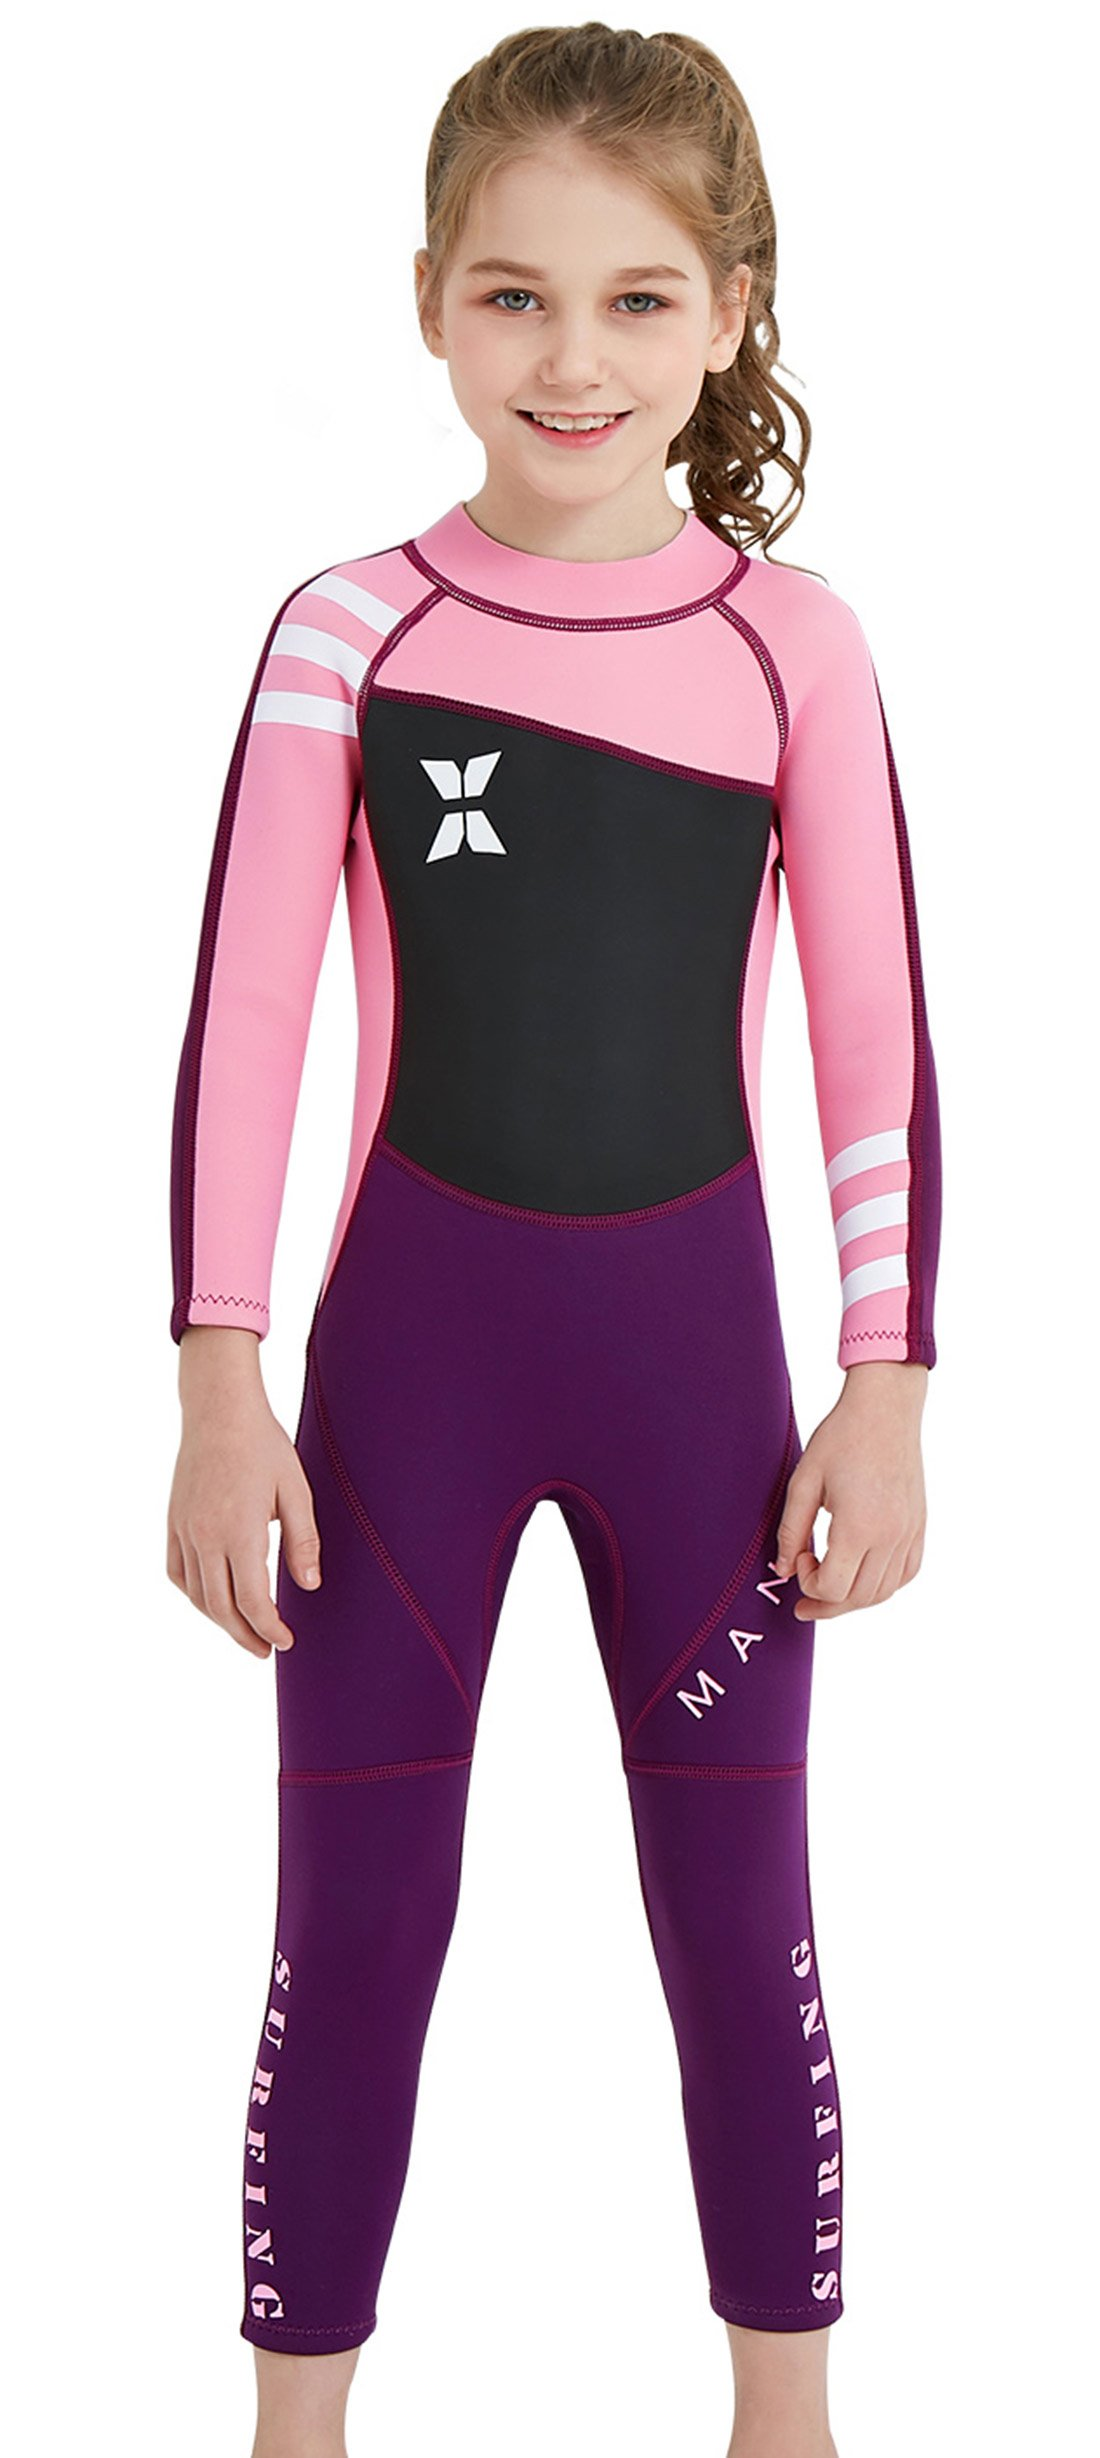 DIVE & SAIL Girls Wetsuit Warm 2.5mm Neoprene Long Sleeve Swimsuit Sun Protection One Piece Swimsuit Sun Suit for Kids Pink XXL by DIVE & SAIL